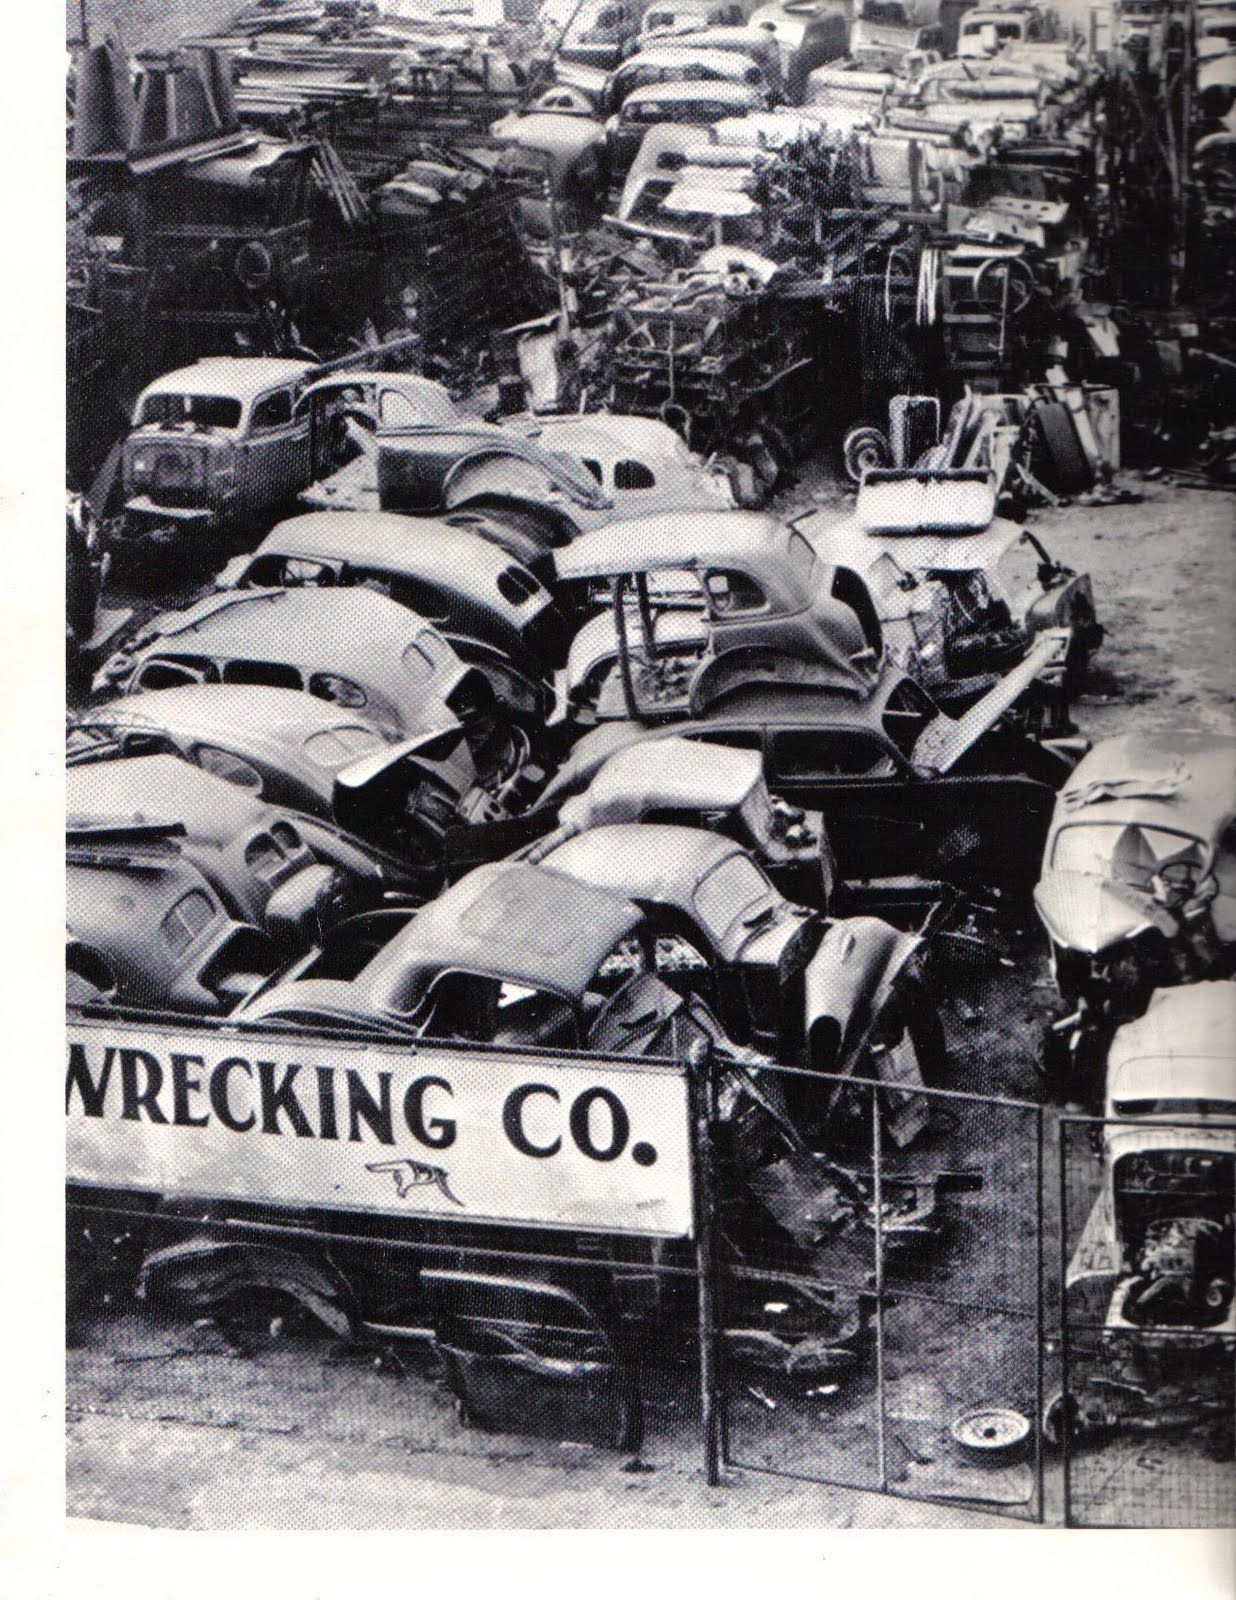 Black Salvage Yard Google Search Barn Finds Classic Cars Abandoned Cars Wrecking Yards